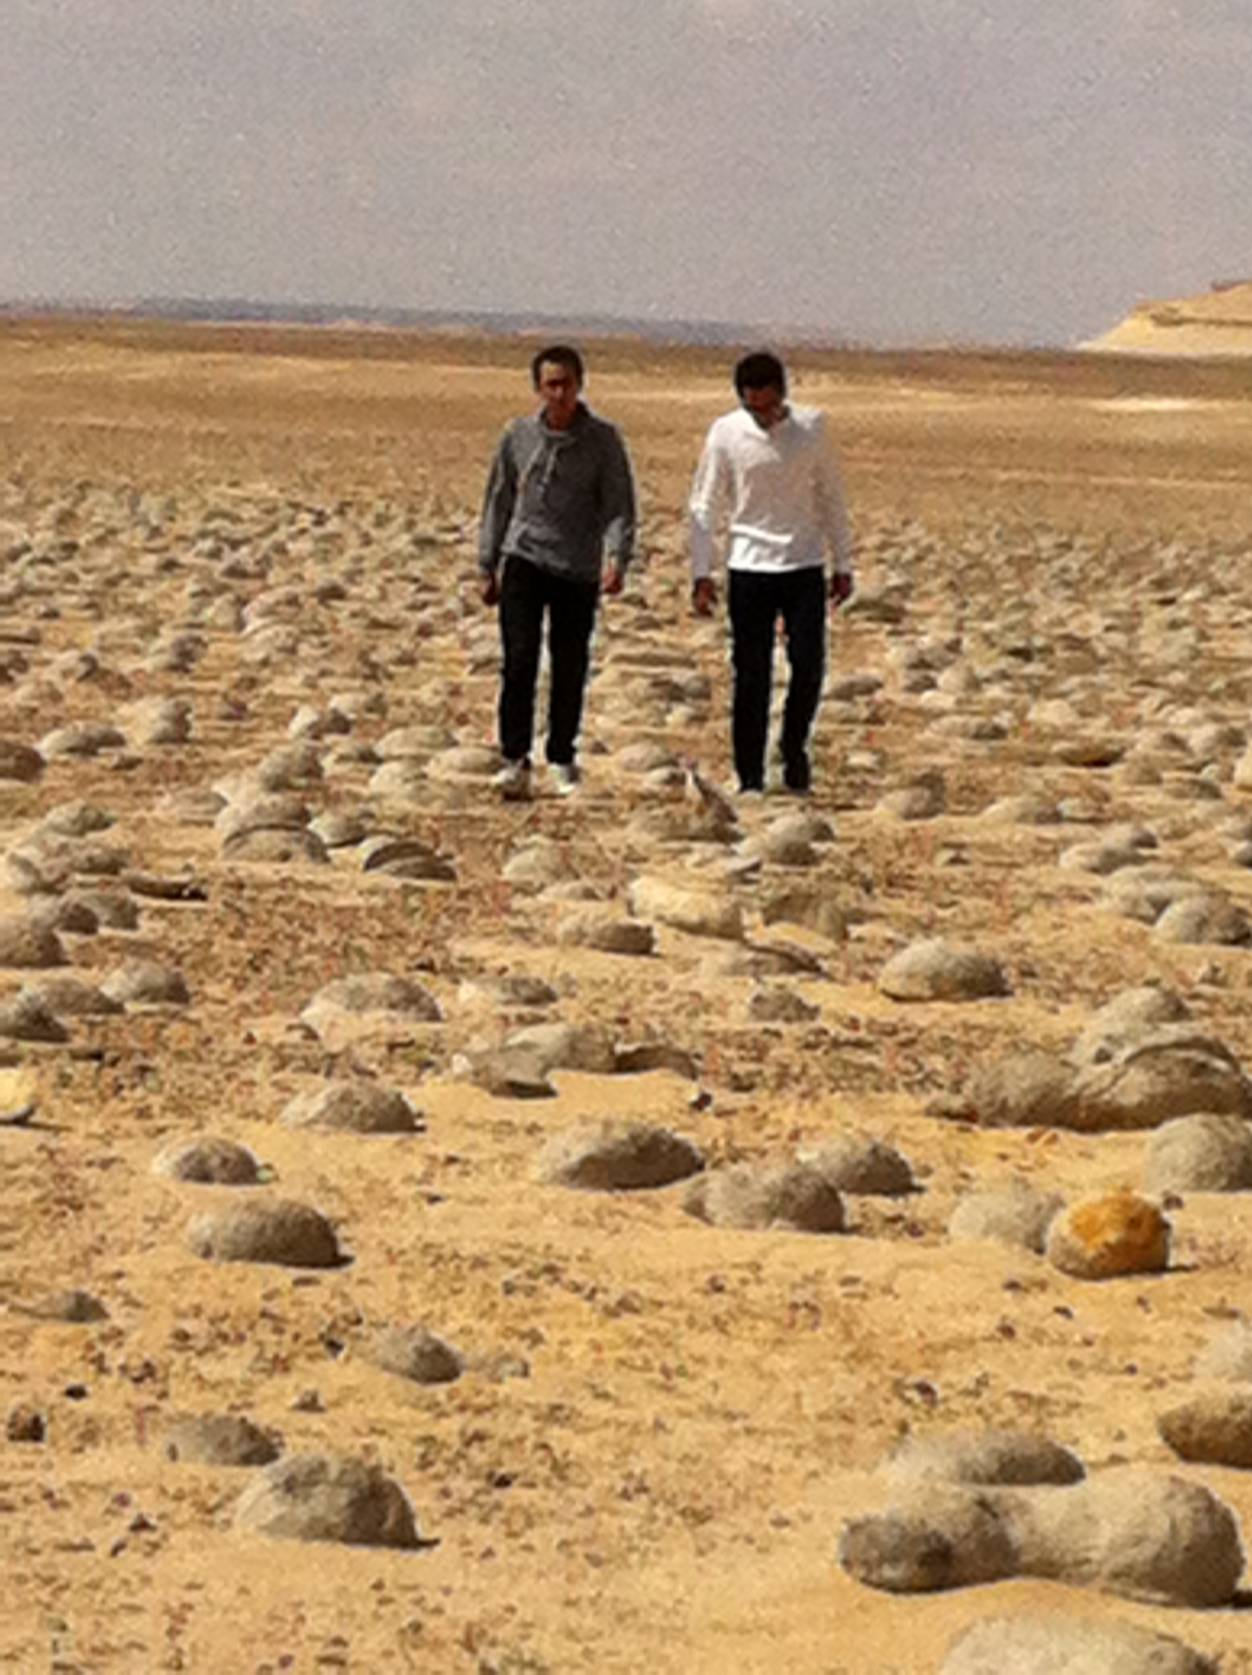 walking through western desert:valley of water melons_3